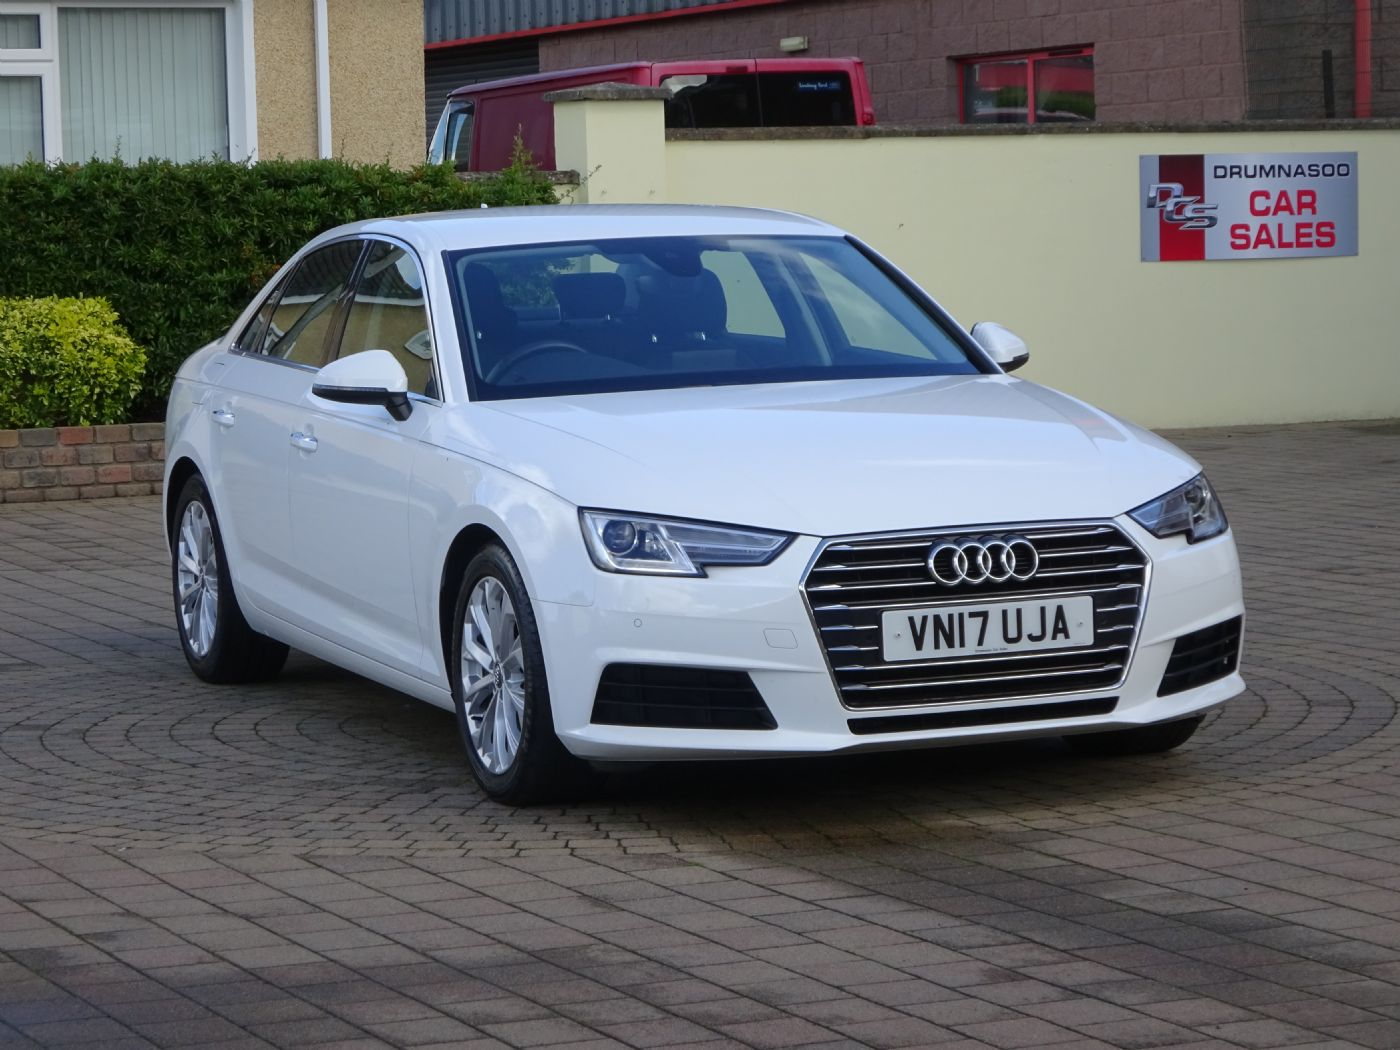 Audi A4 SE Ultra 2.0 TDI , Sat nav, Sports seats